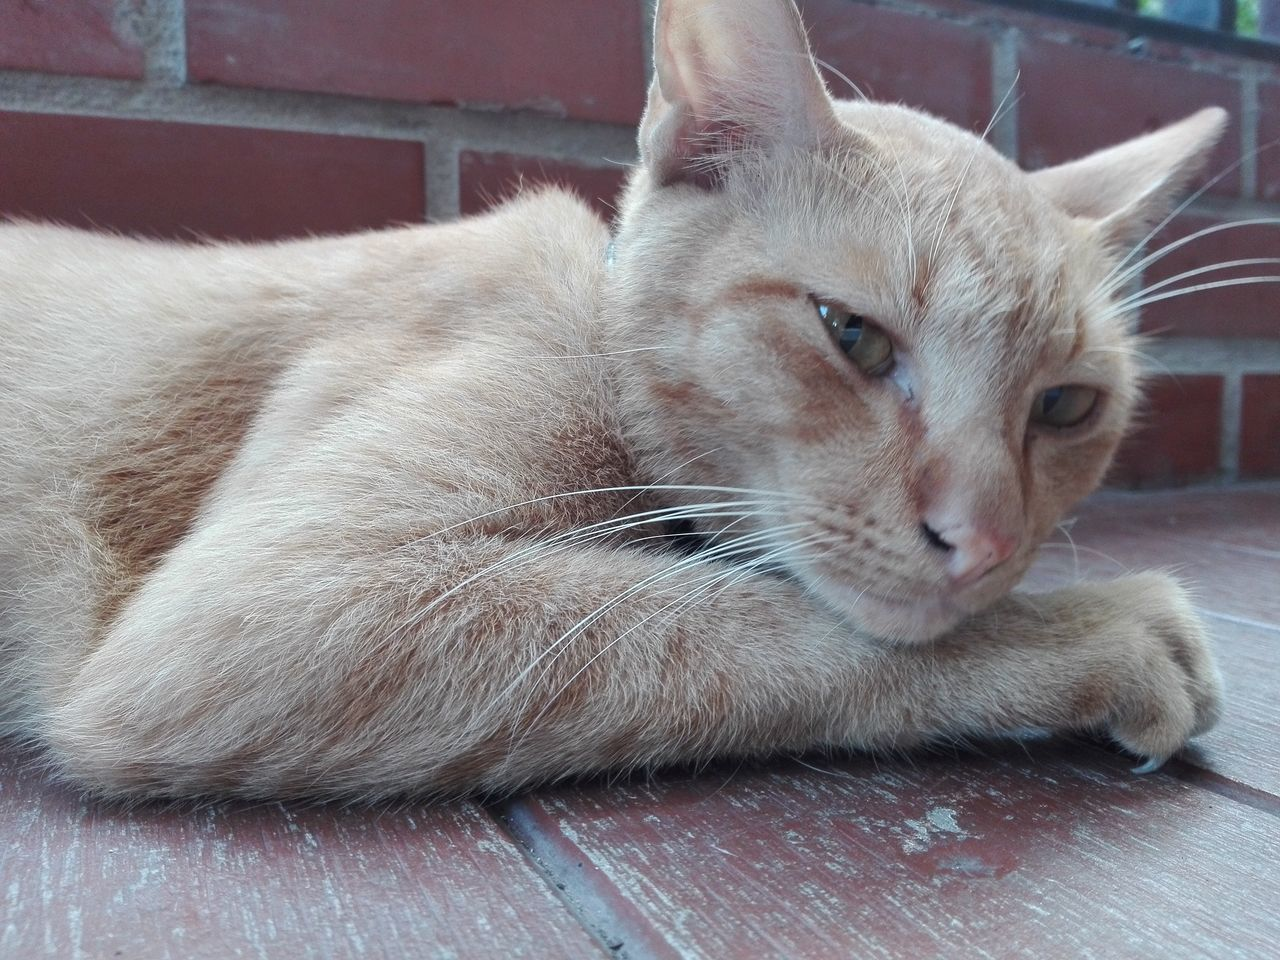 domestic cat, pets, domestic animals, animal themes, one animal, mammal, feline, indoors, whisker, no people, relaxation, close-up, lying down, day, ginger cat